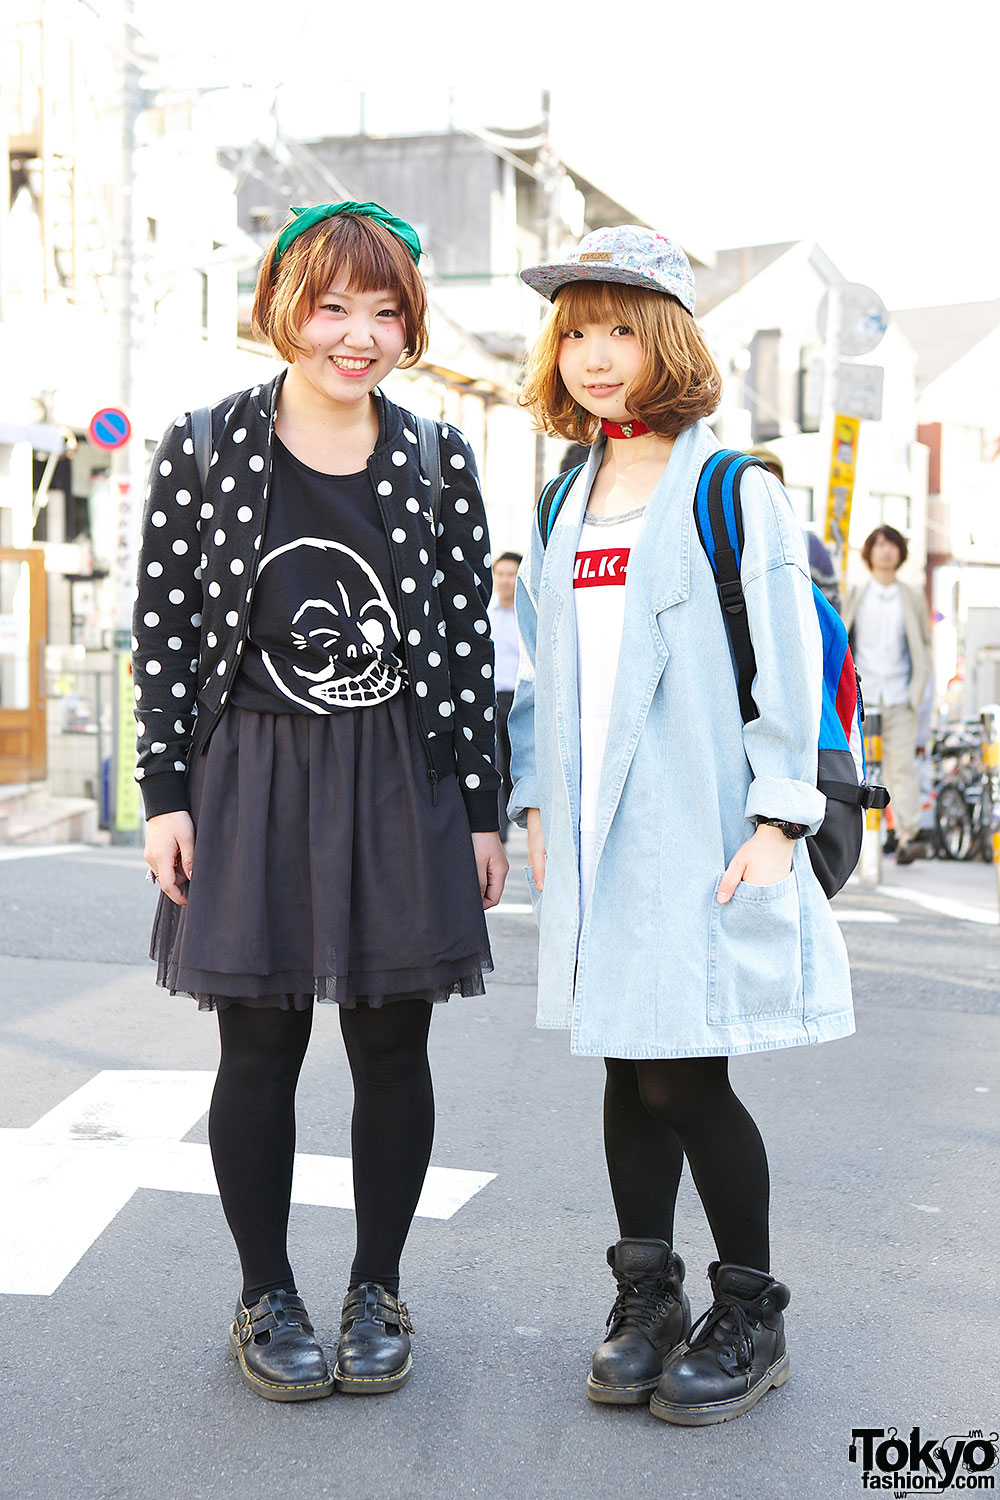 Smiley Harajuku Girls